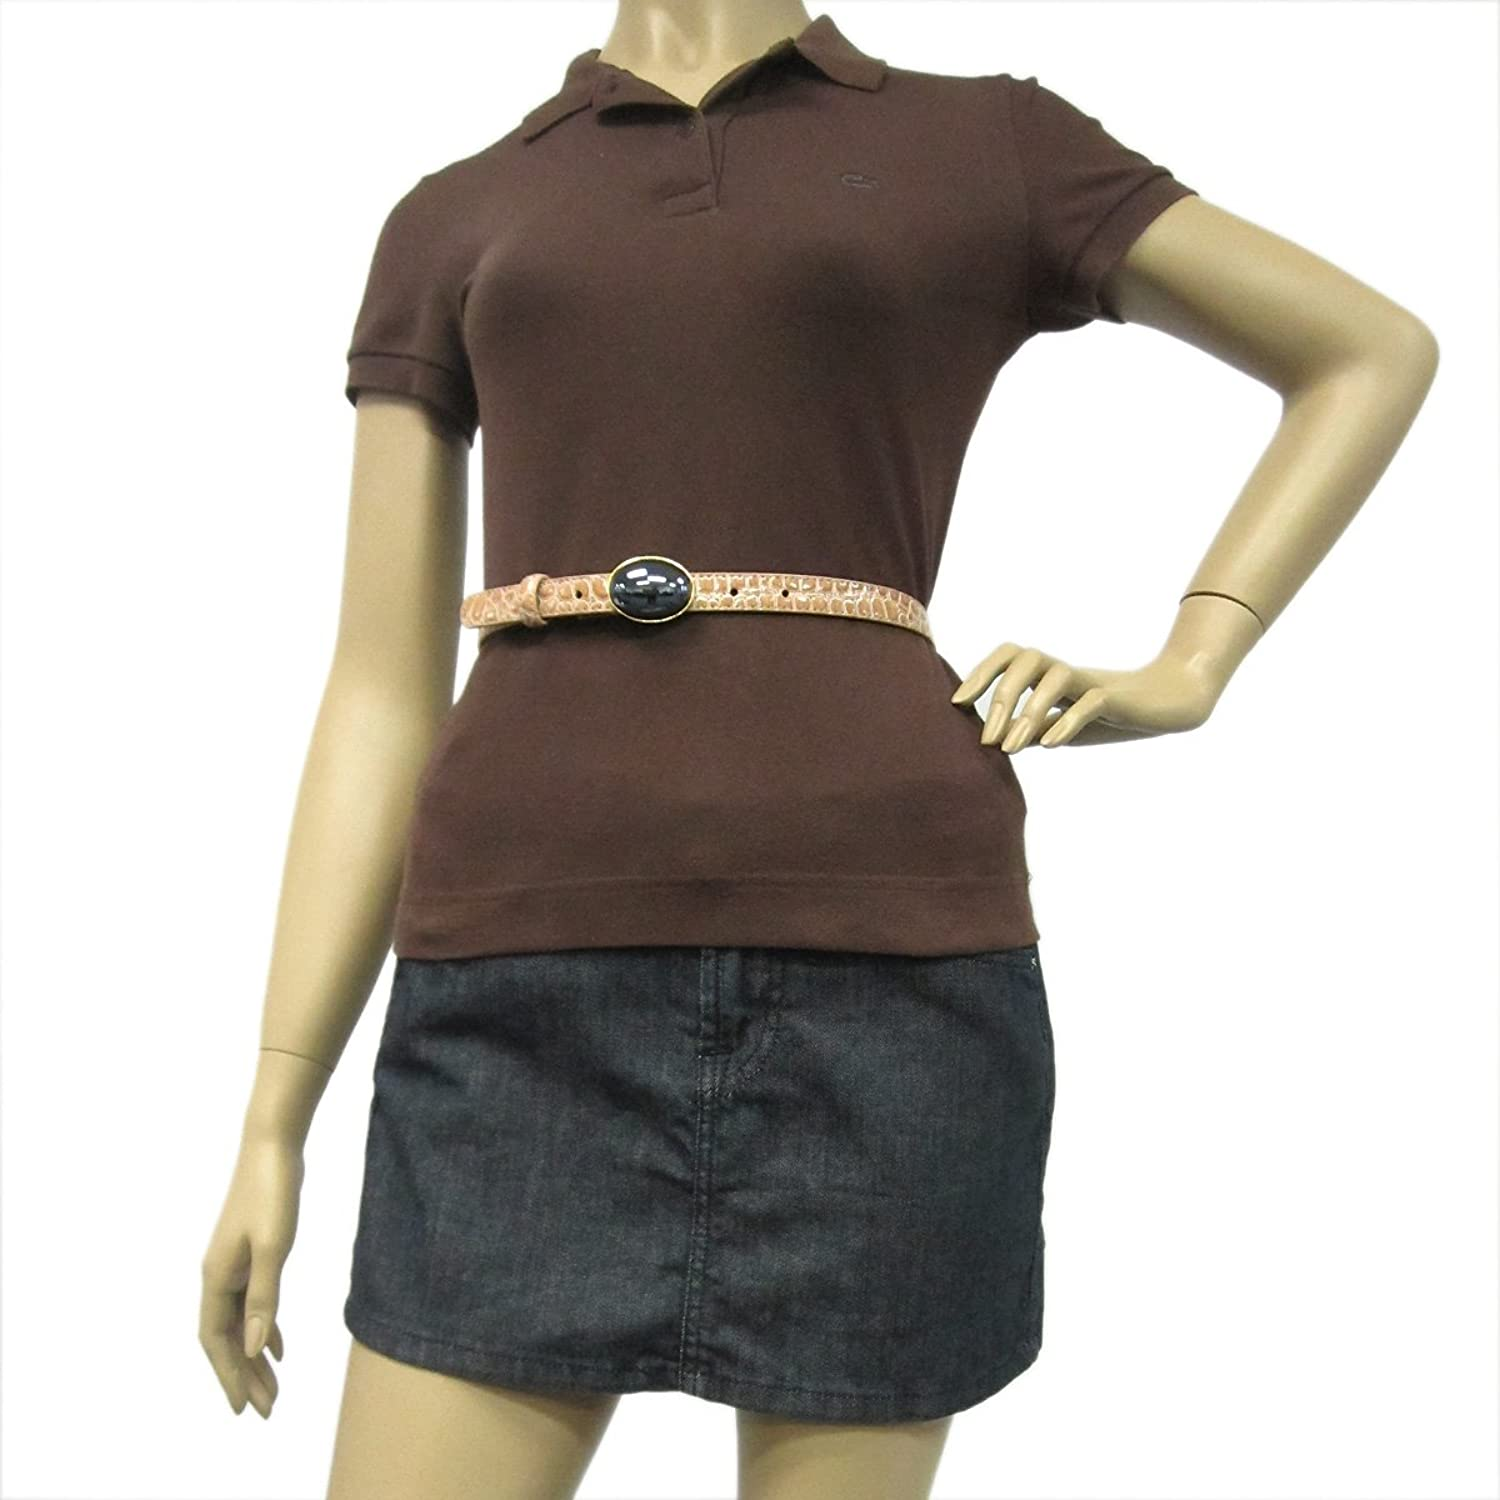 """3/4"""" Women's Fashion Oval Buckle with Precious Stone on Quality Croc Leatherette Belt"""